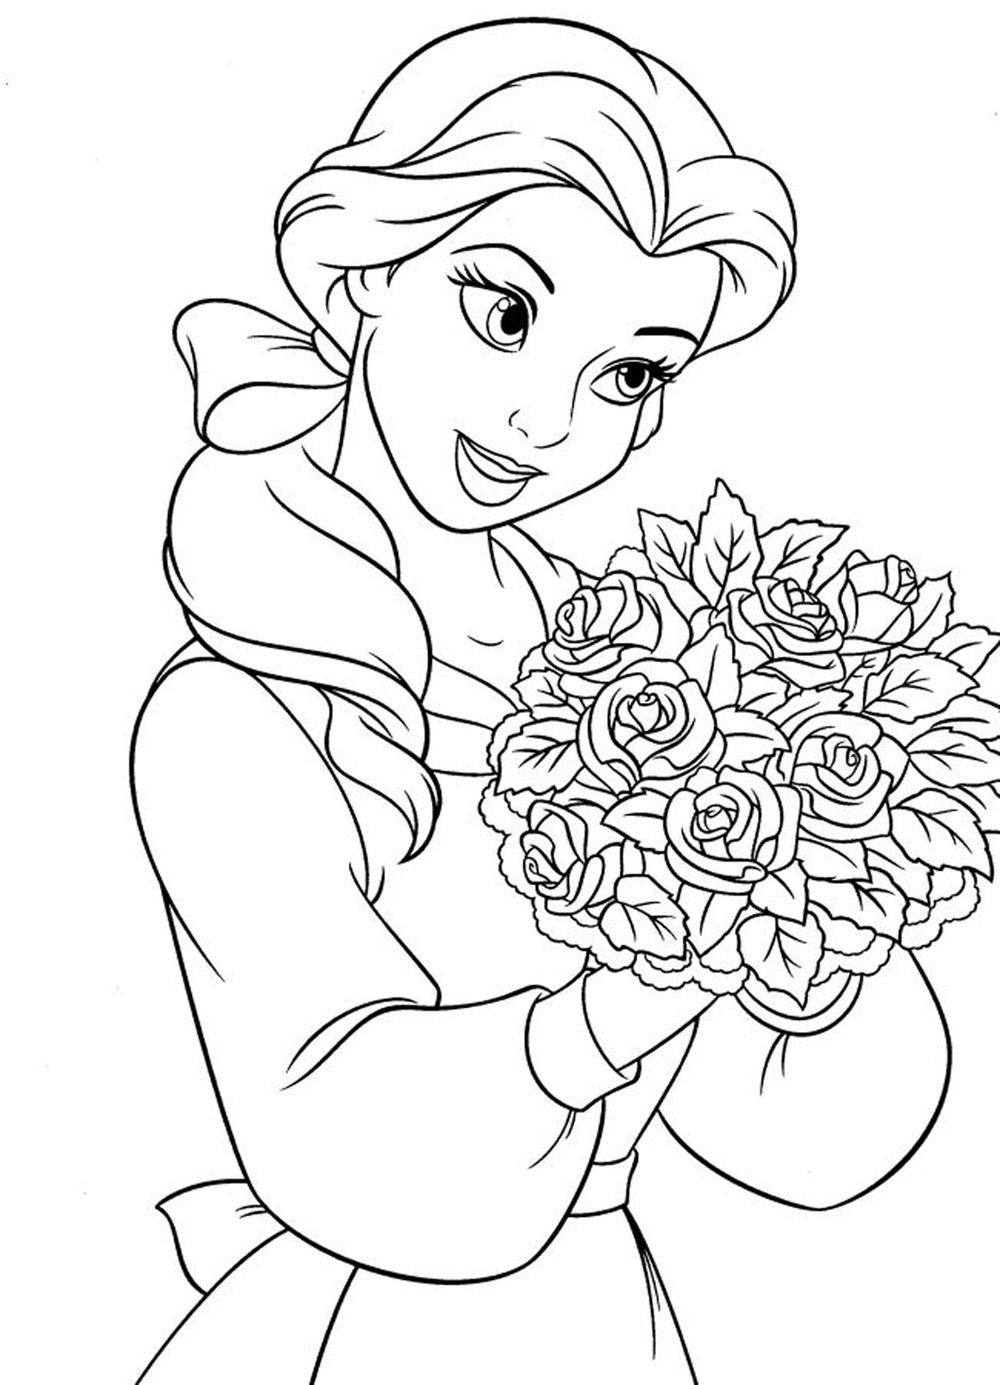 Disney Princess Coloring Book Belle Coloring Pages Disney Princess Coloring Pages Rose Coloring Pages